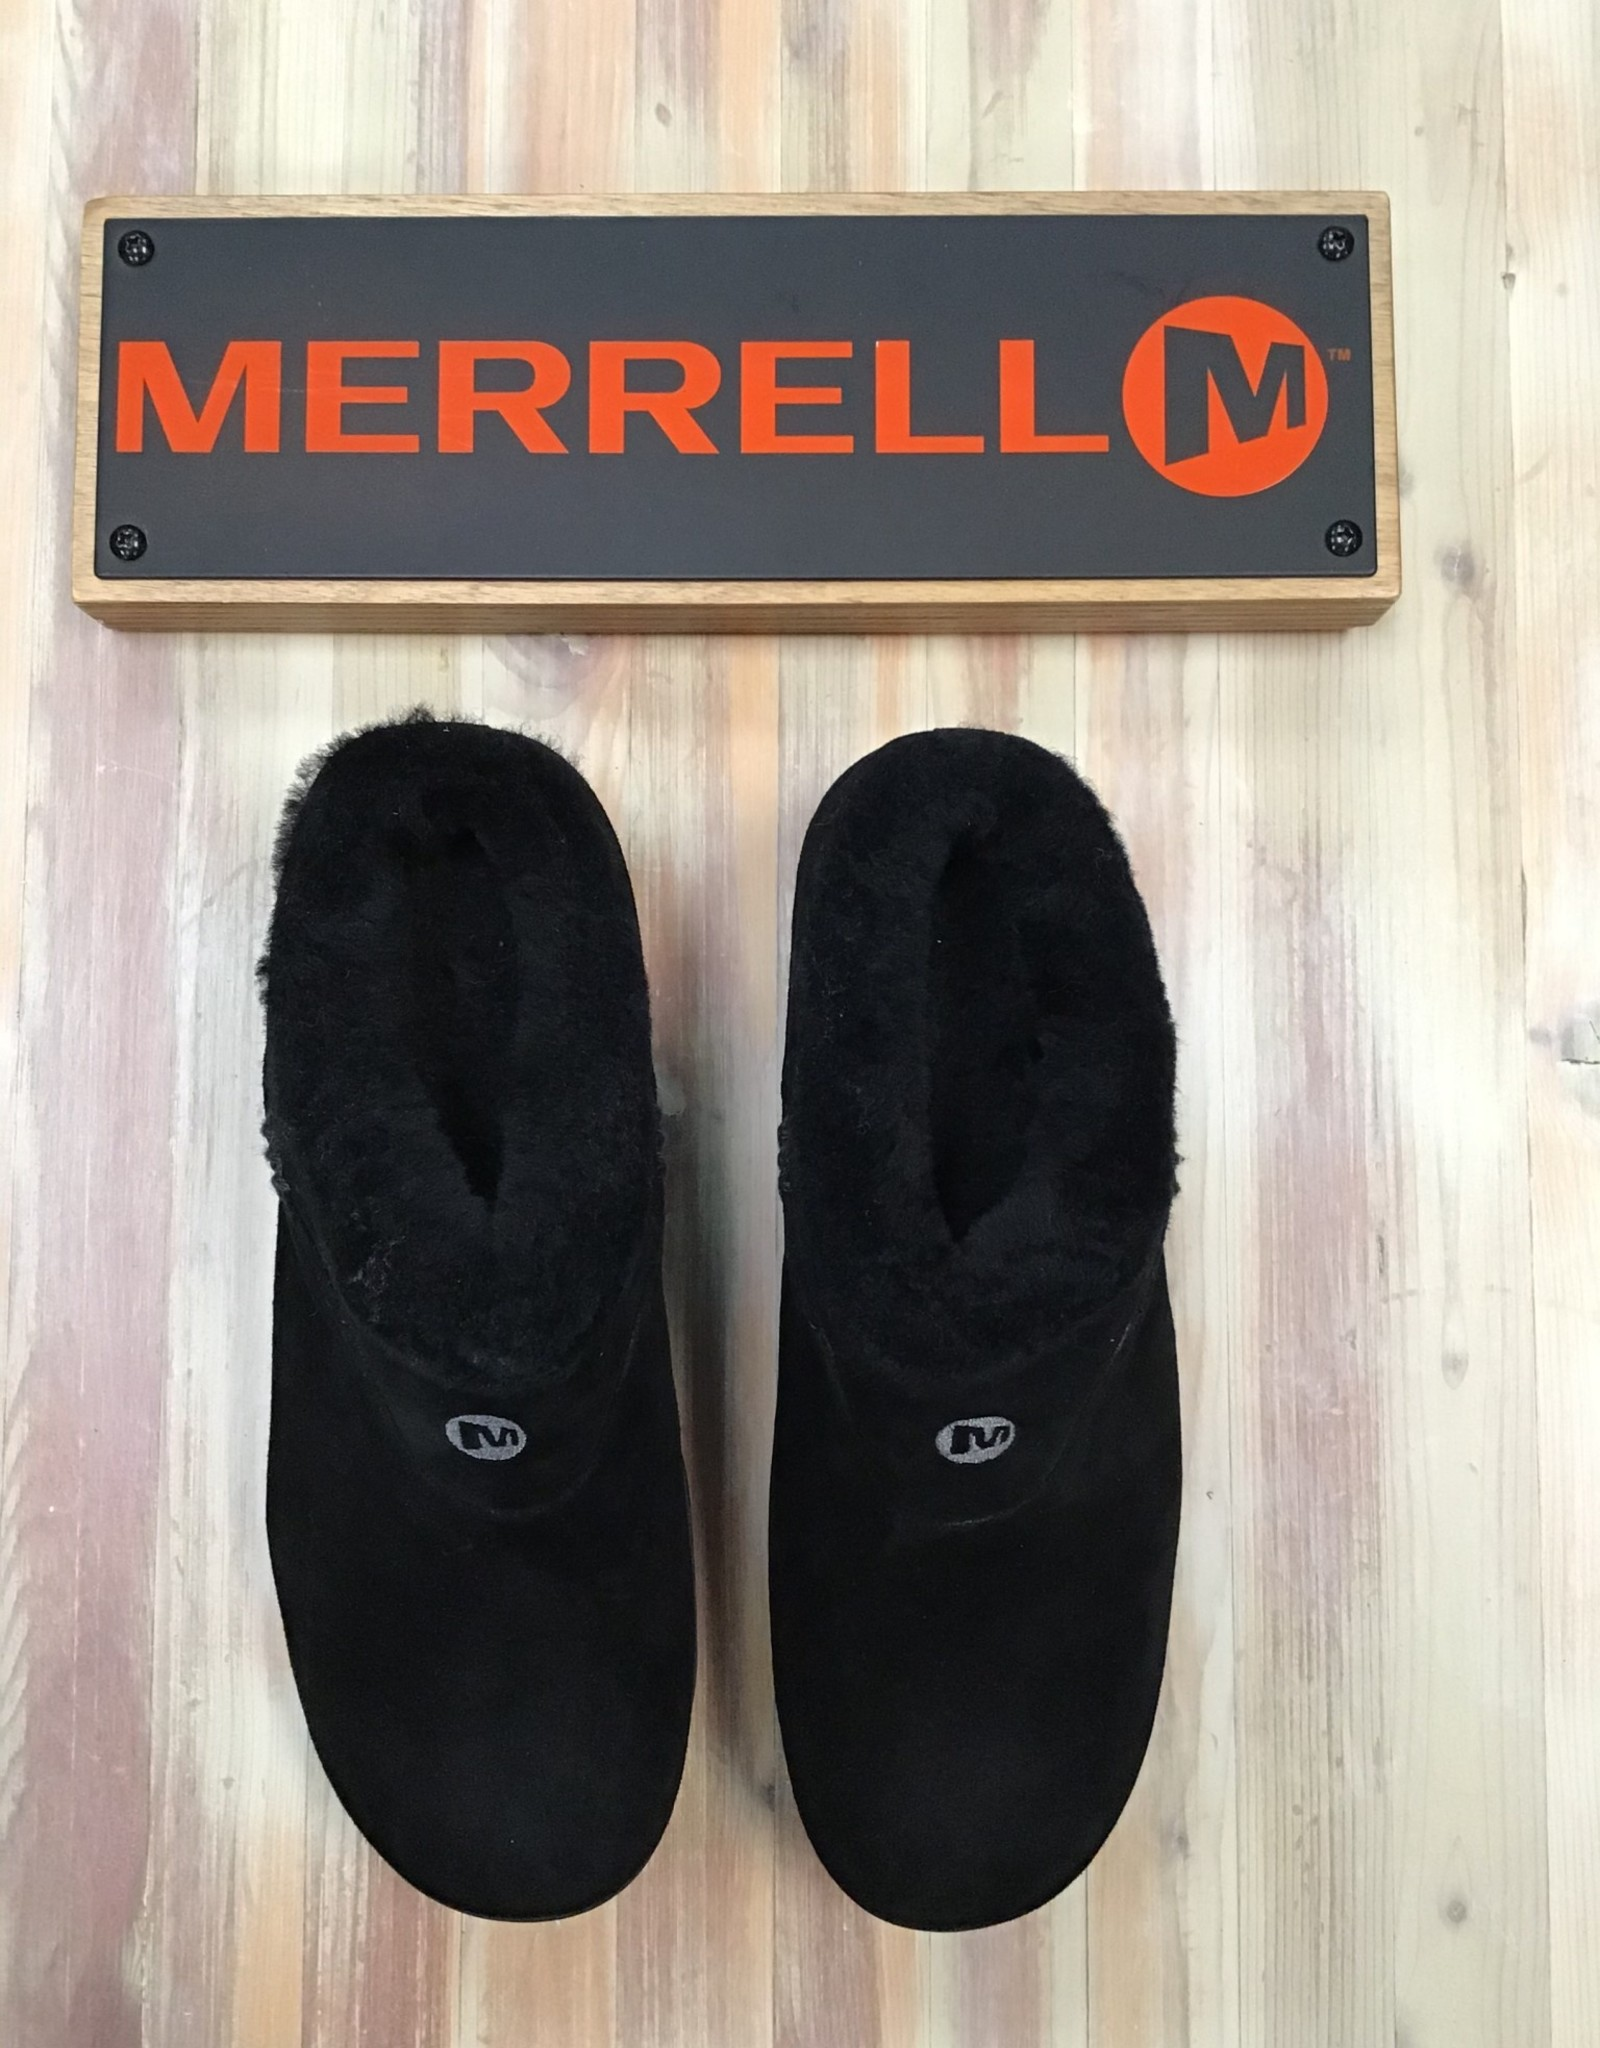 Merrell Merrell Encore Q2 Ice Ladies'